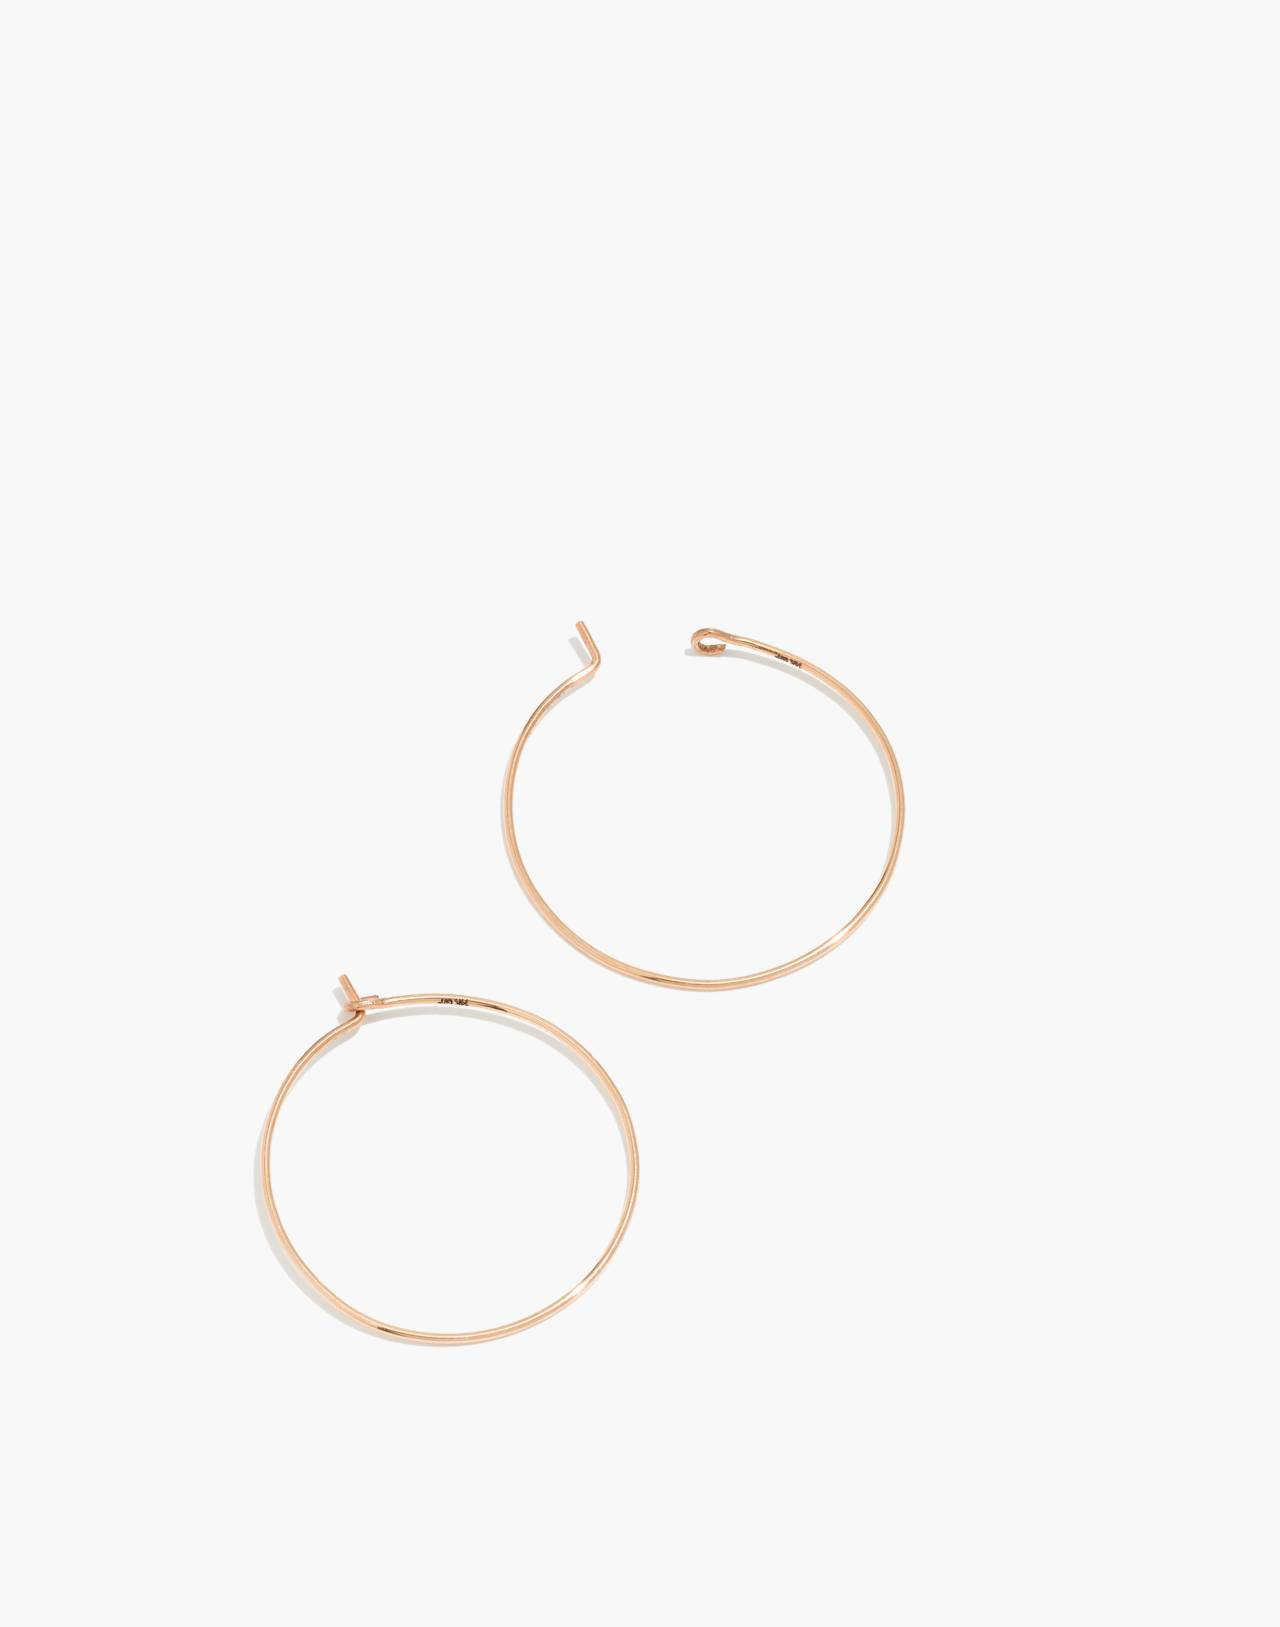 14k Gold-Filled Medium Hoop Earrings in 14k gold fill image 1